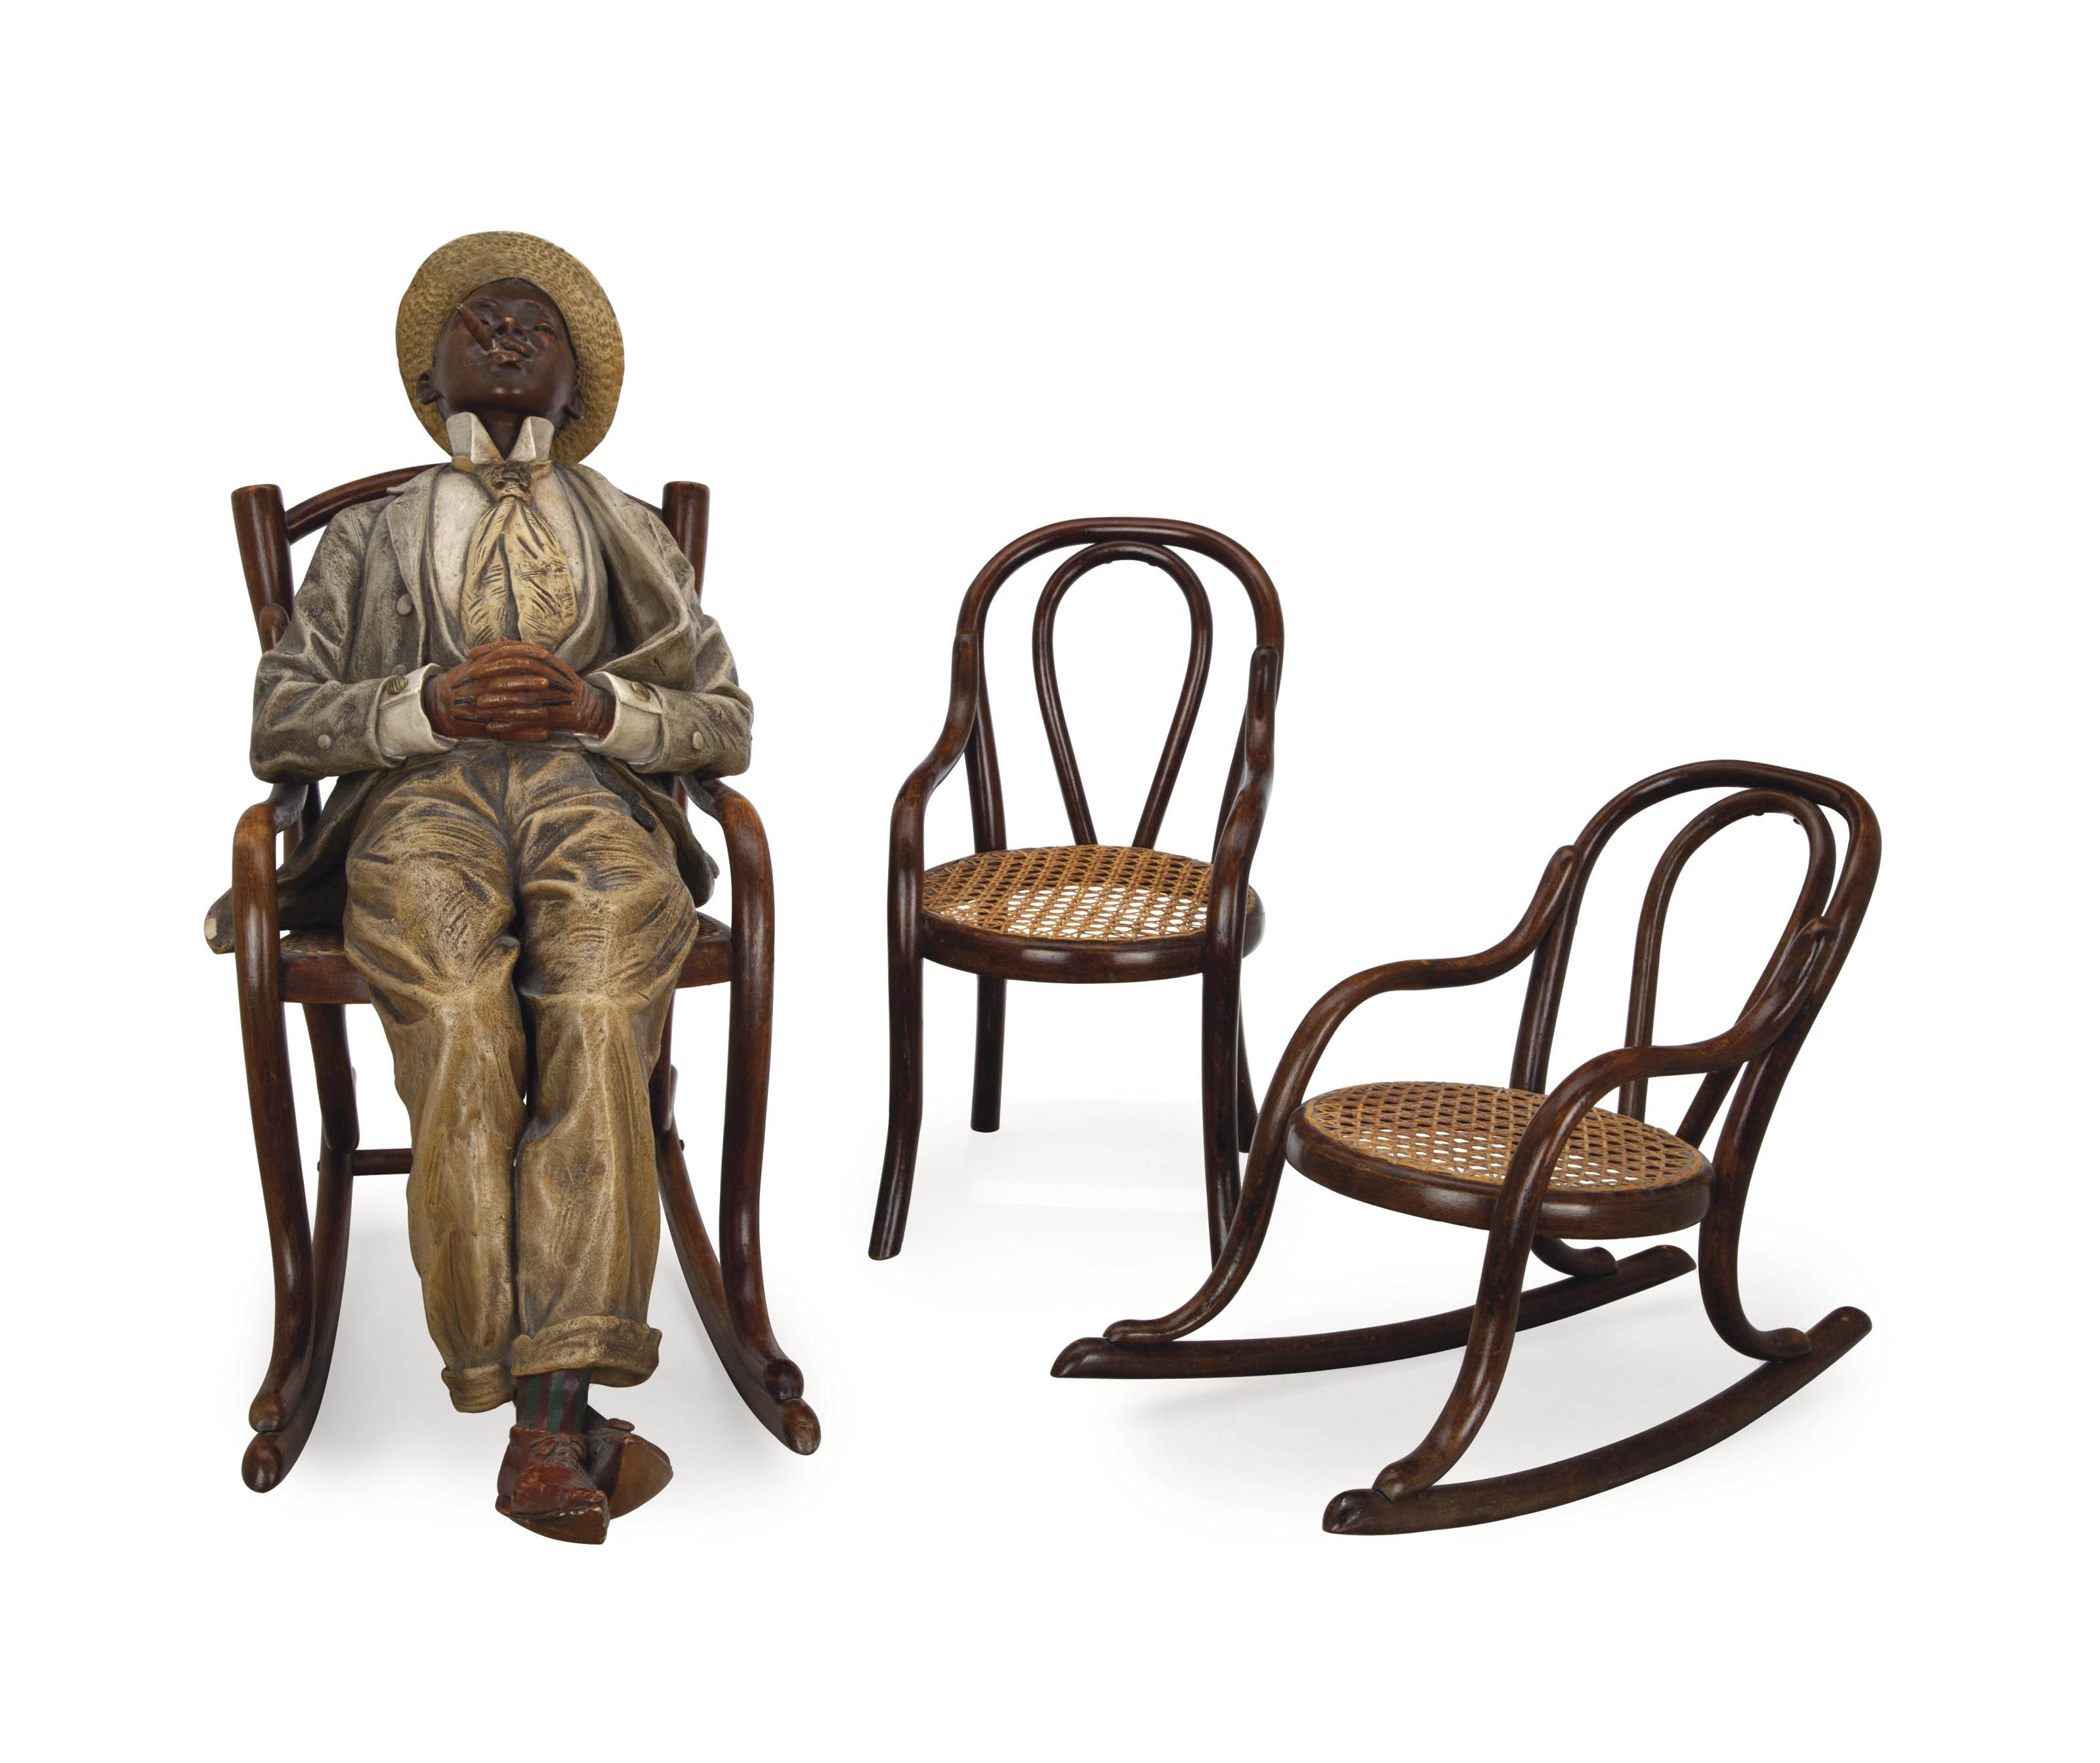 TWO MINIATURE BENTWOOD AND CAN